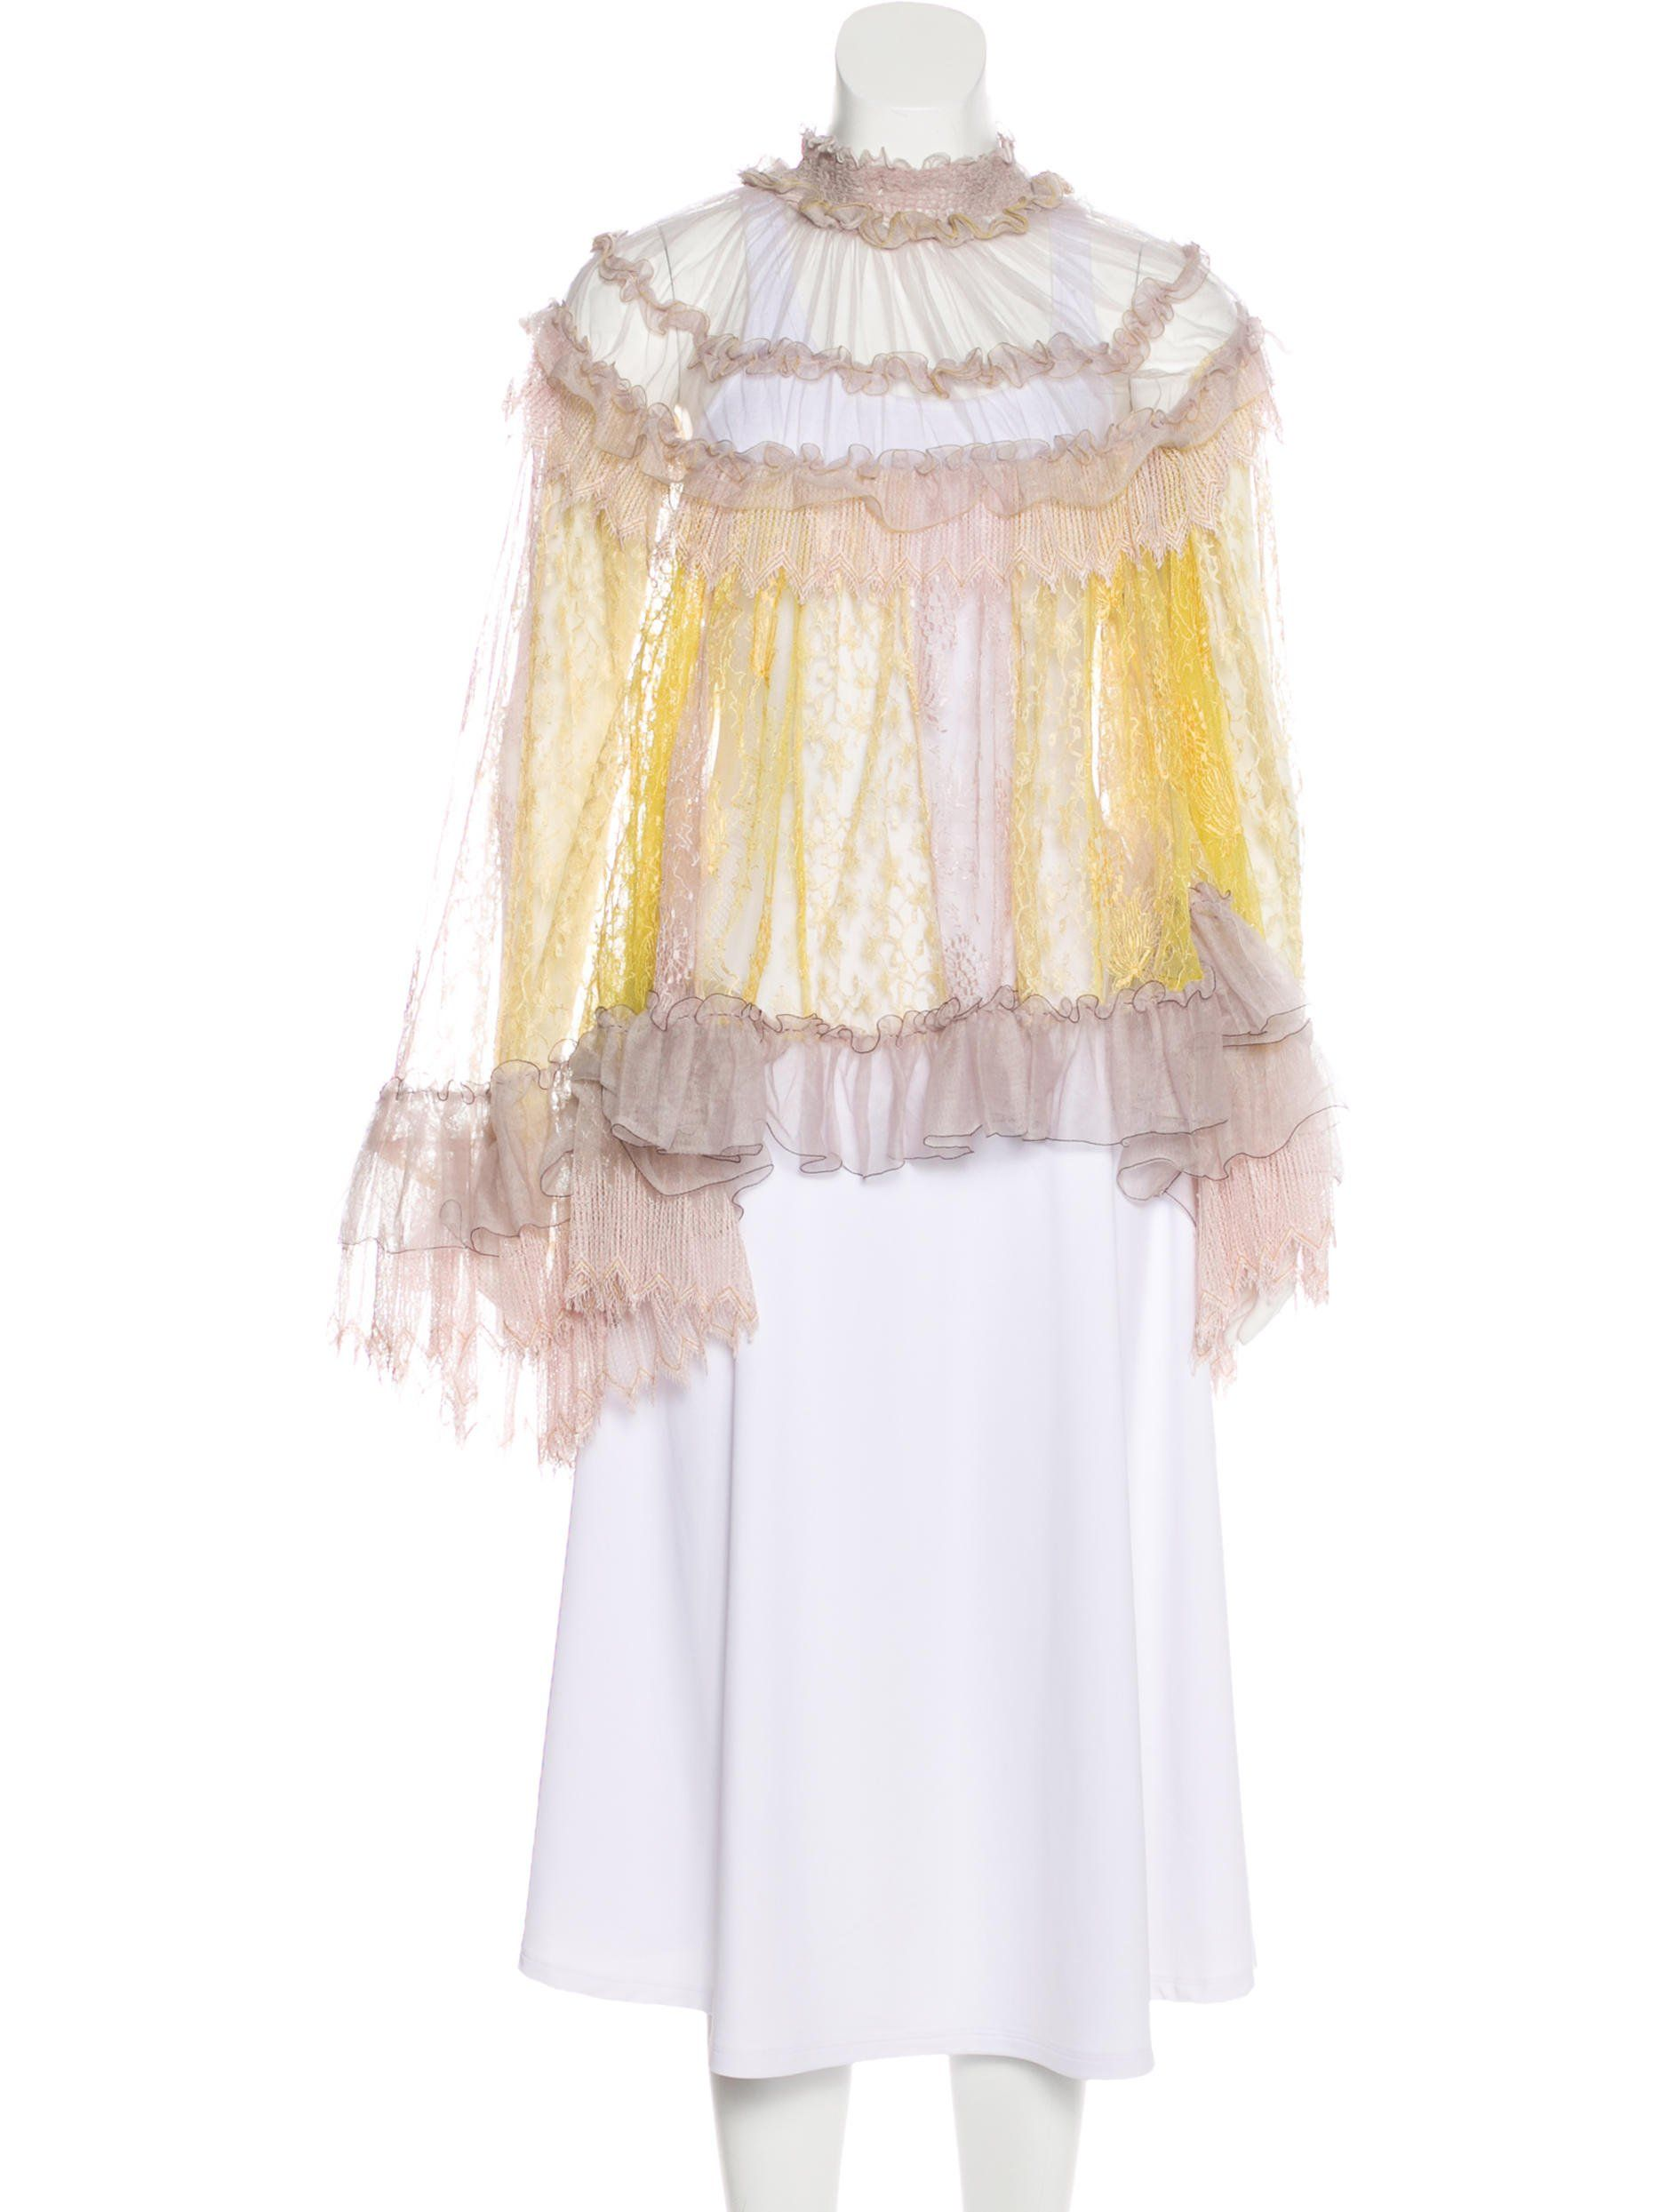 Purple And Yellow Chloa C Sheer Top With Lace And Ruffle Trim Throughout Mock Neck And Long Sleeves Sheer Lace Top Lace Sheer Lace [ 2489 x 1887 Pixel ]